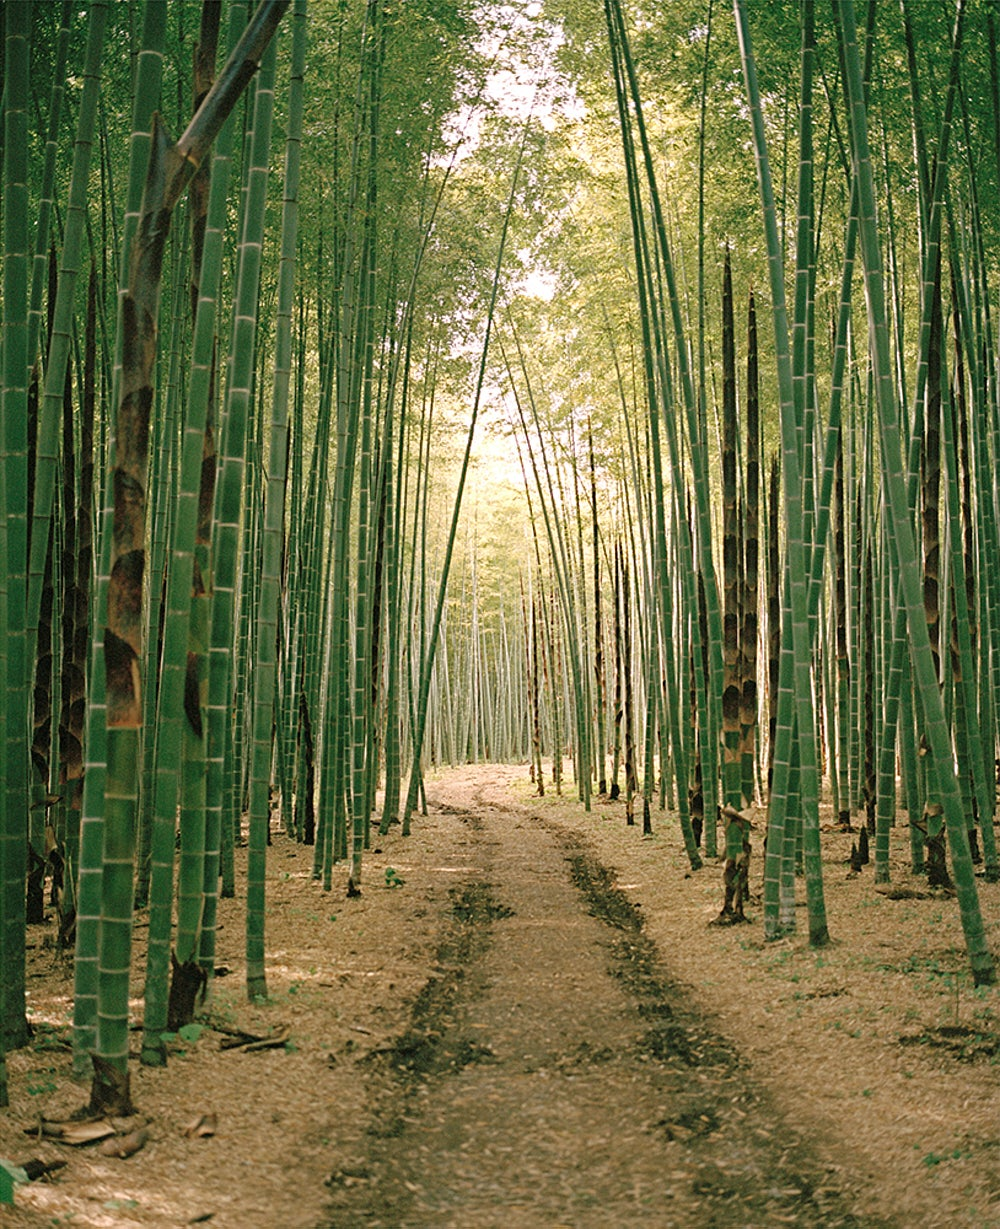 Image of bamboo forest two